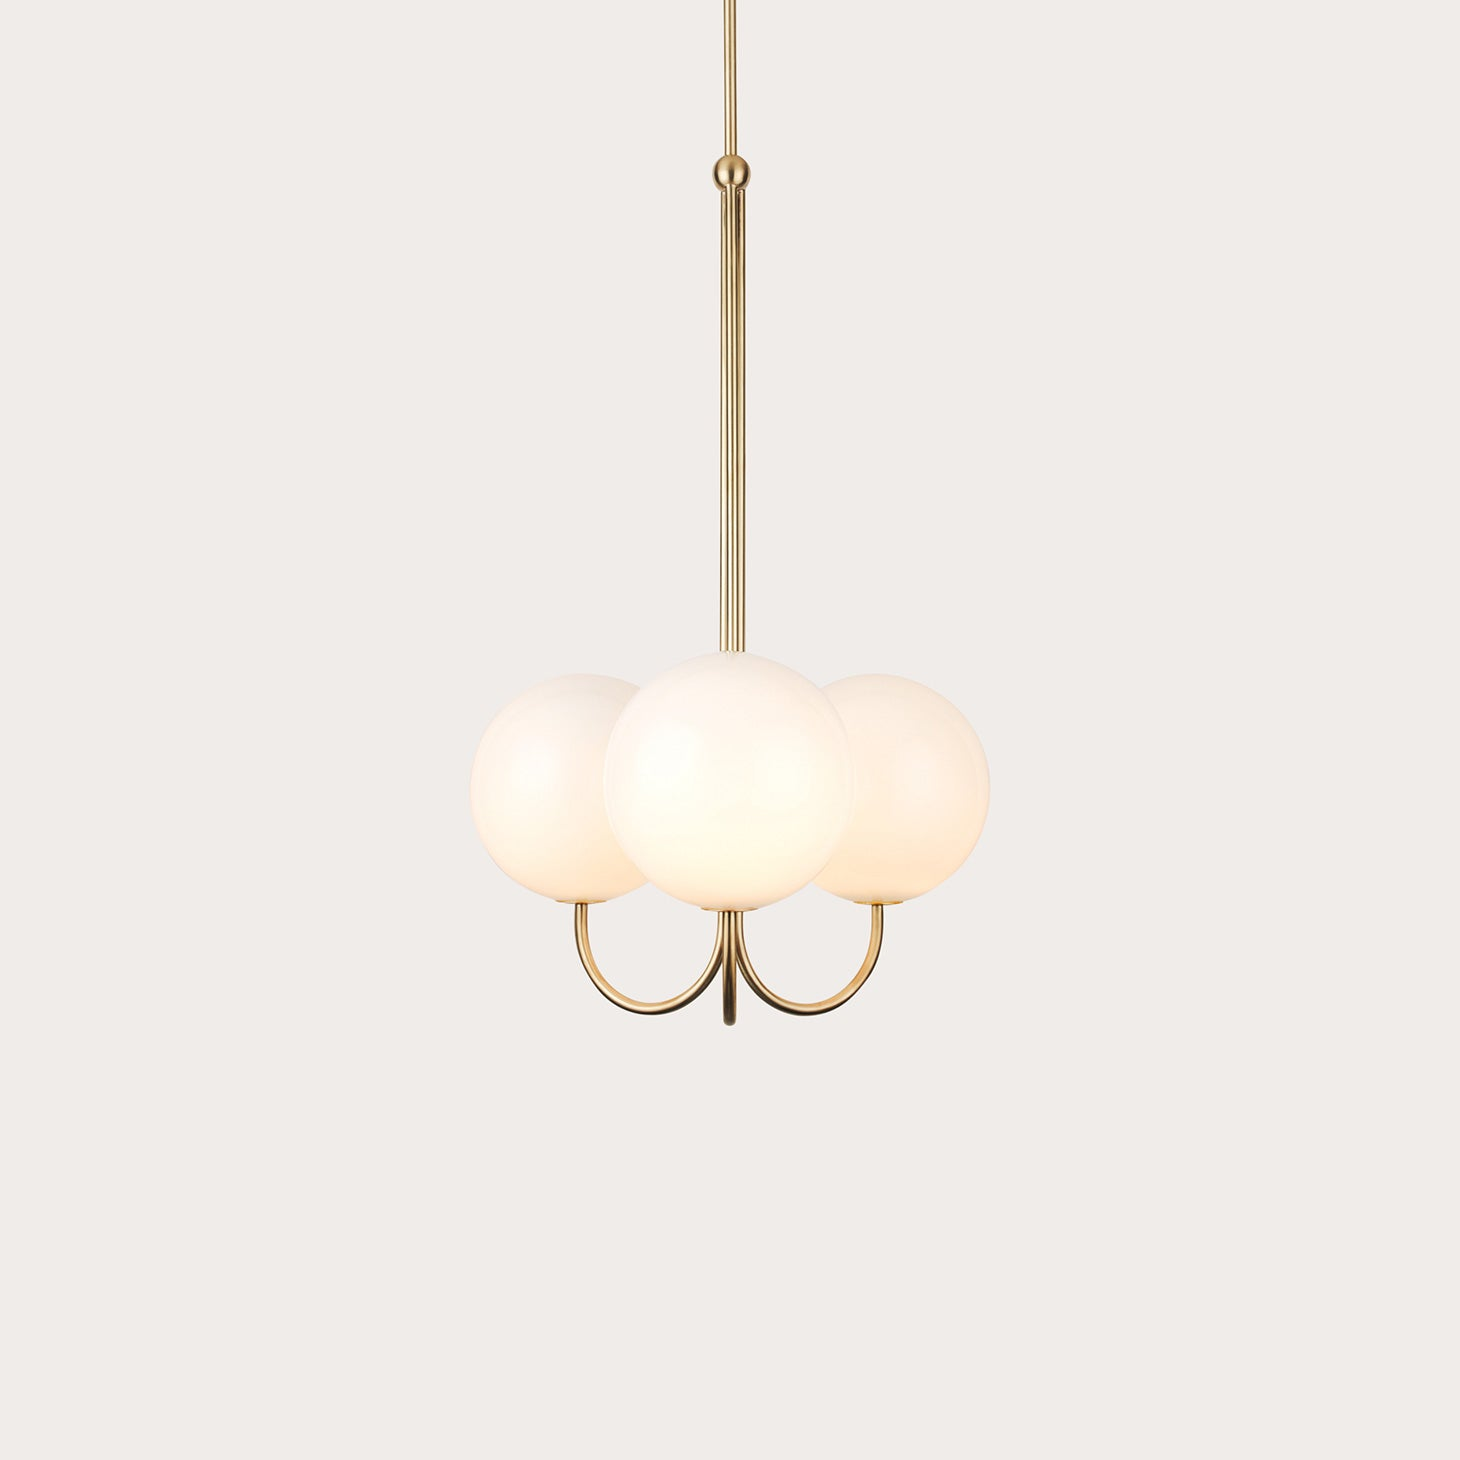 Triple Angle Lighting Michael Anastassiades Designer Furniture Sku: 717-100-10068